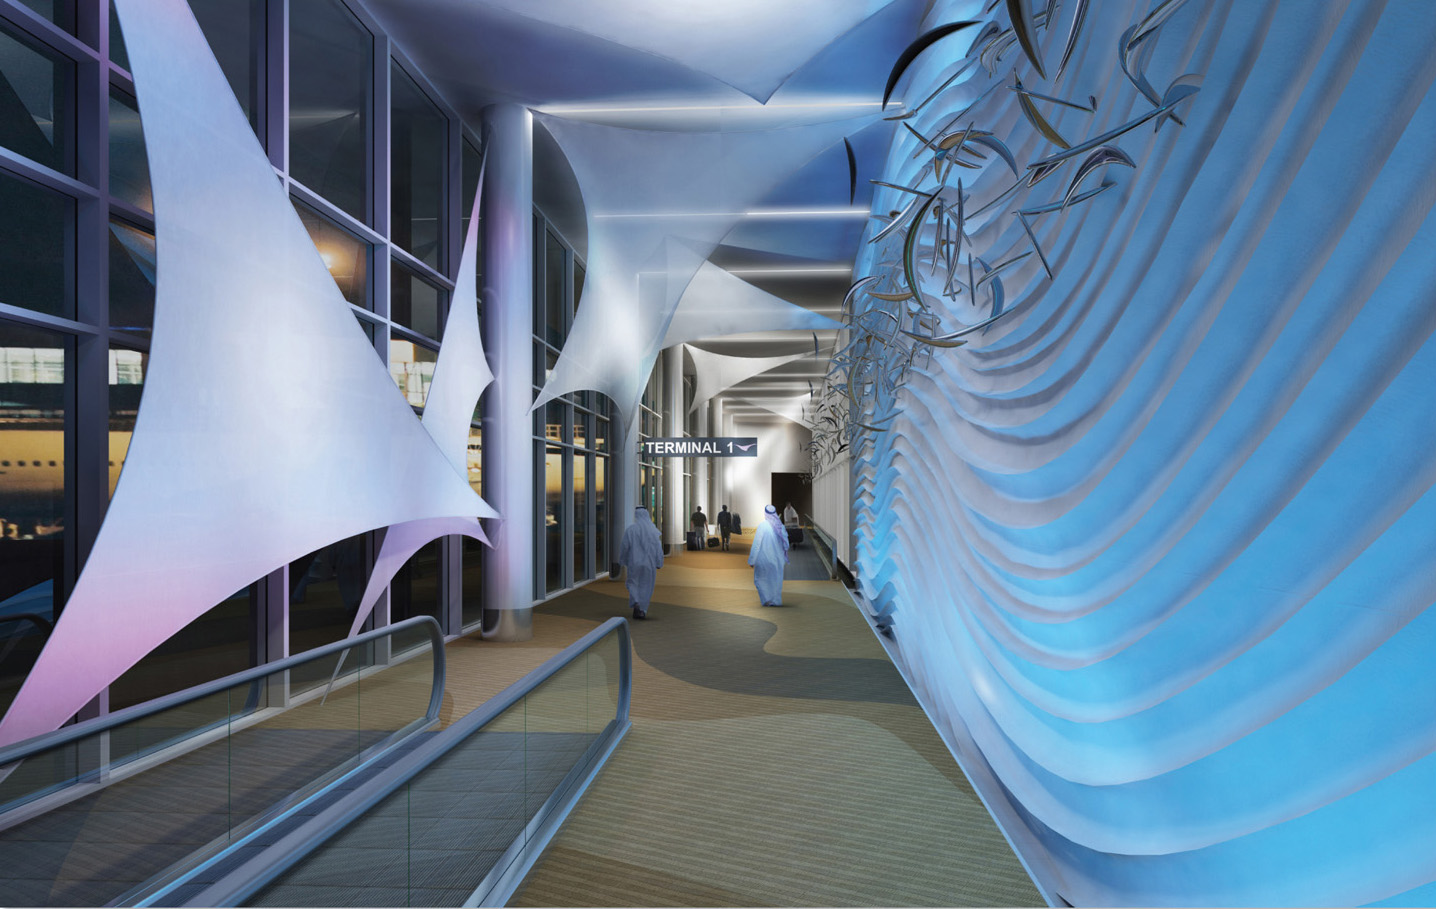 Sterile Corridor - Night View